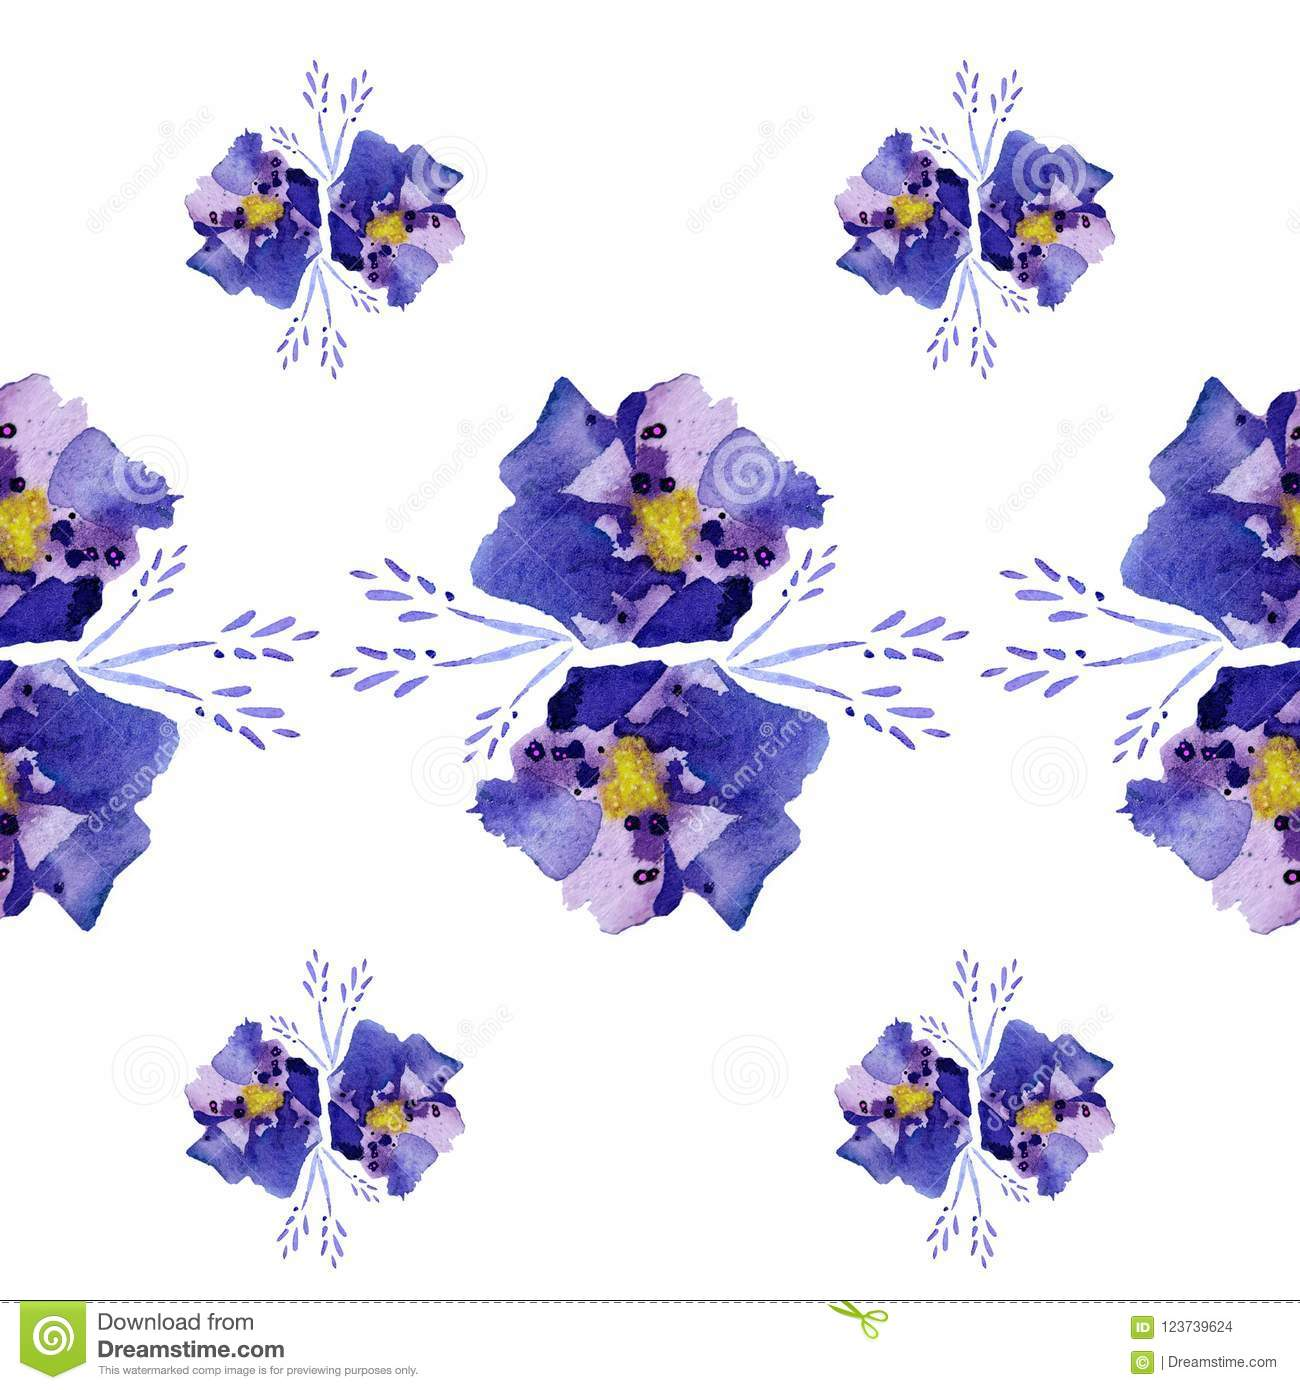 Illustration abstract blue flowers with vibes stock illustration download illustration abstract blue flowers with vibes stock illustration illustration of seamless collection izmirmasajfo